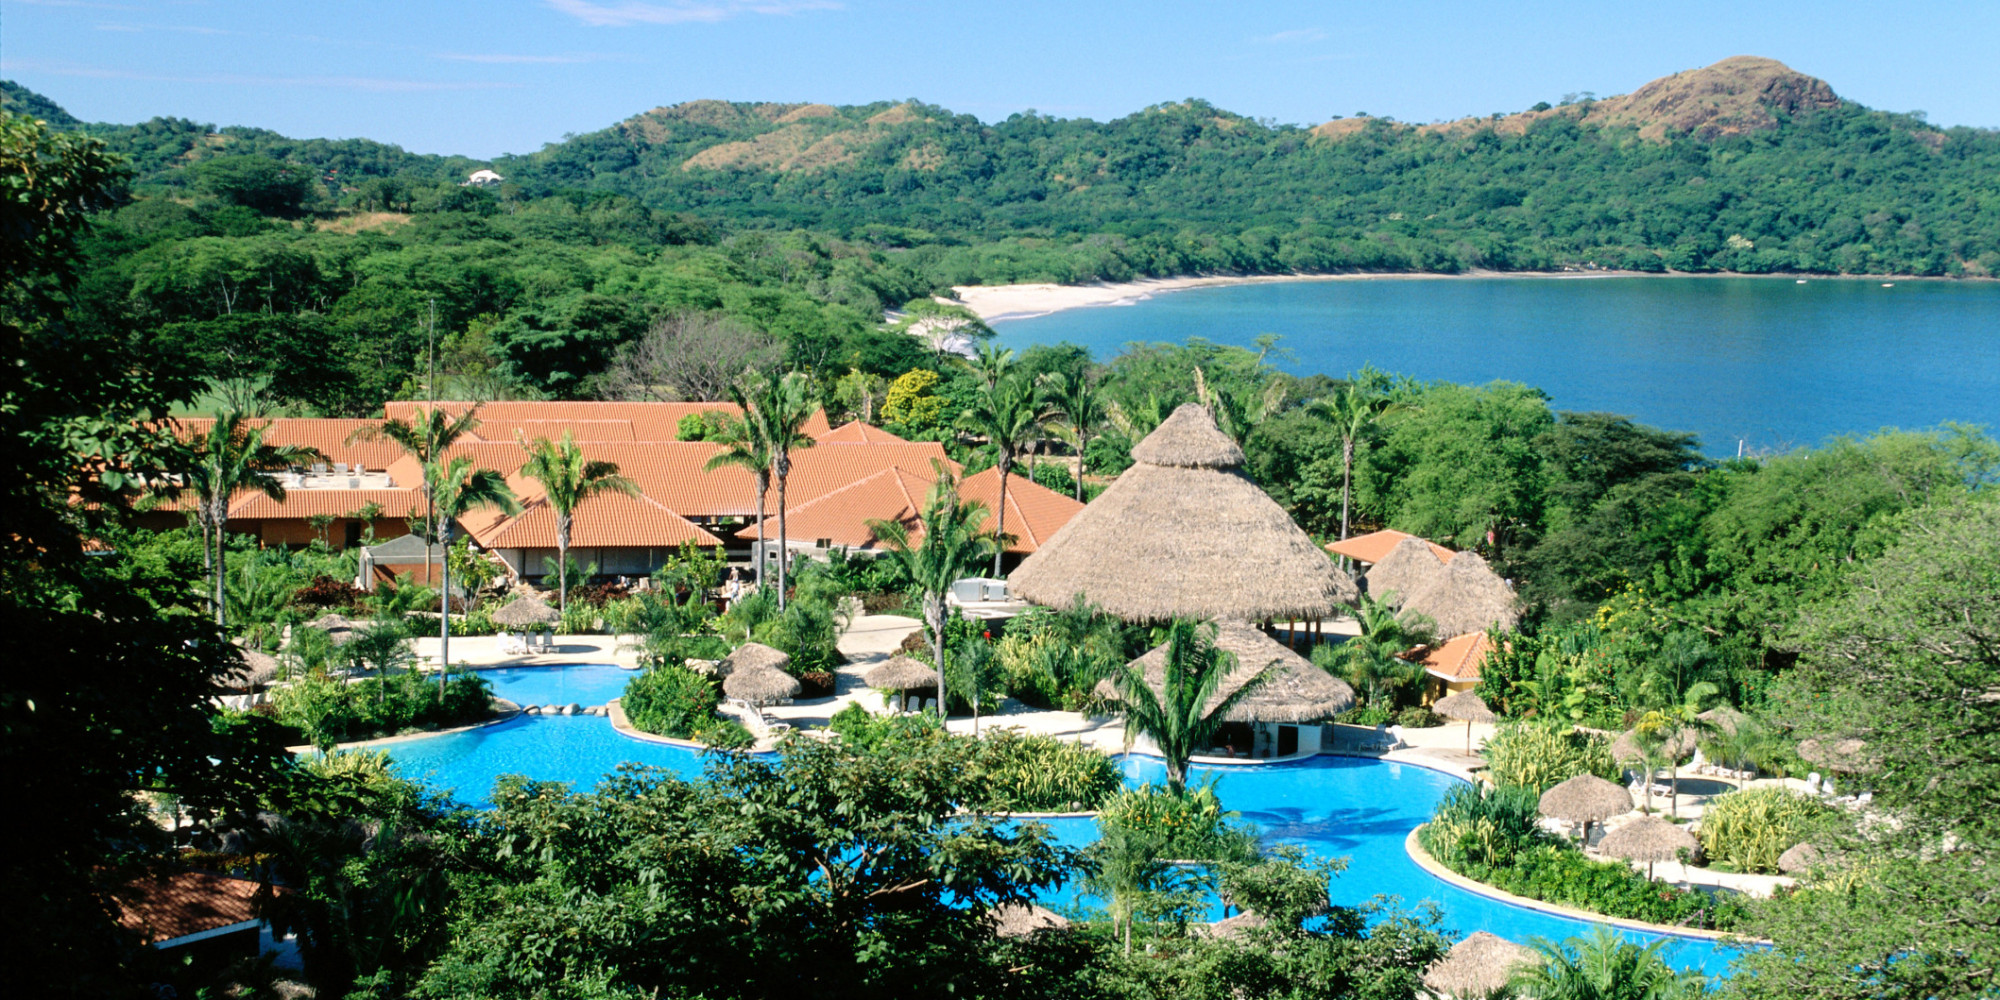 Owning A Successful Hotel Business By Stunning Beaches In Costa Rica